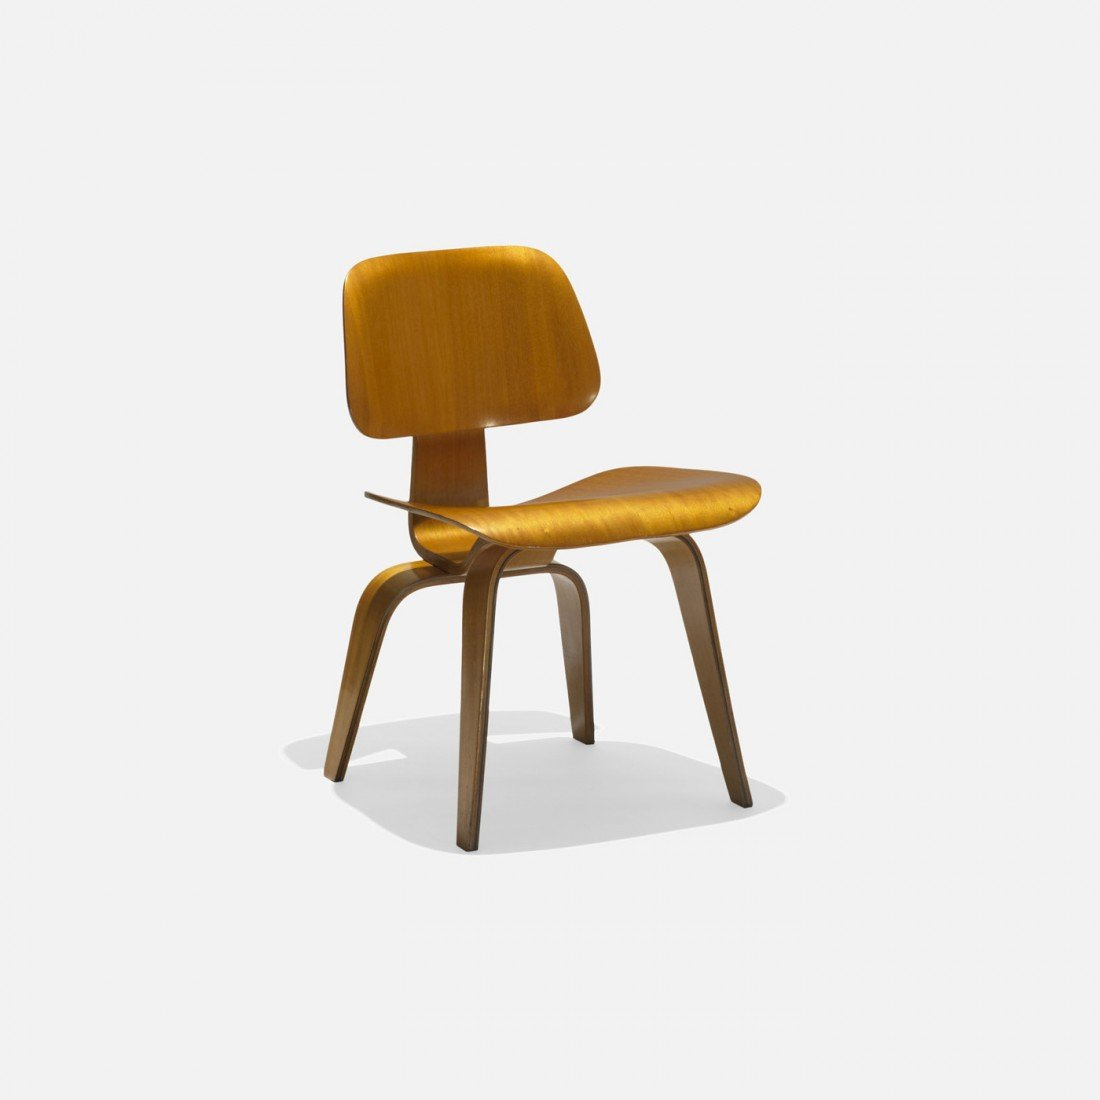 109: Charles and Ray Eames DCW